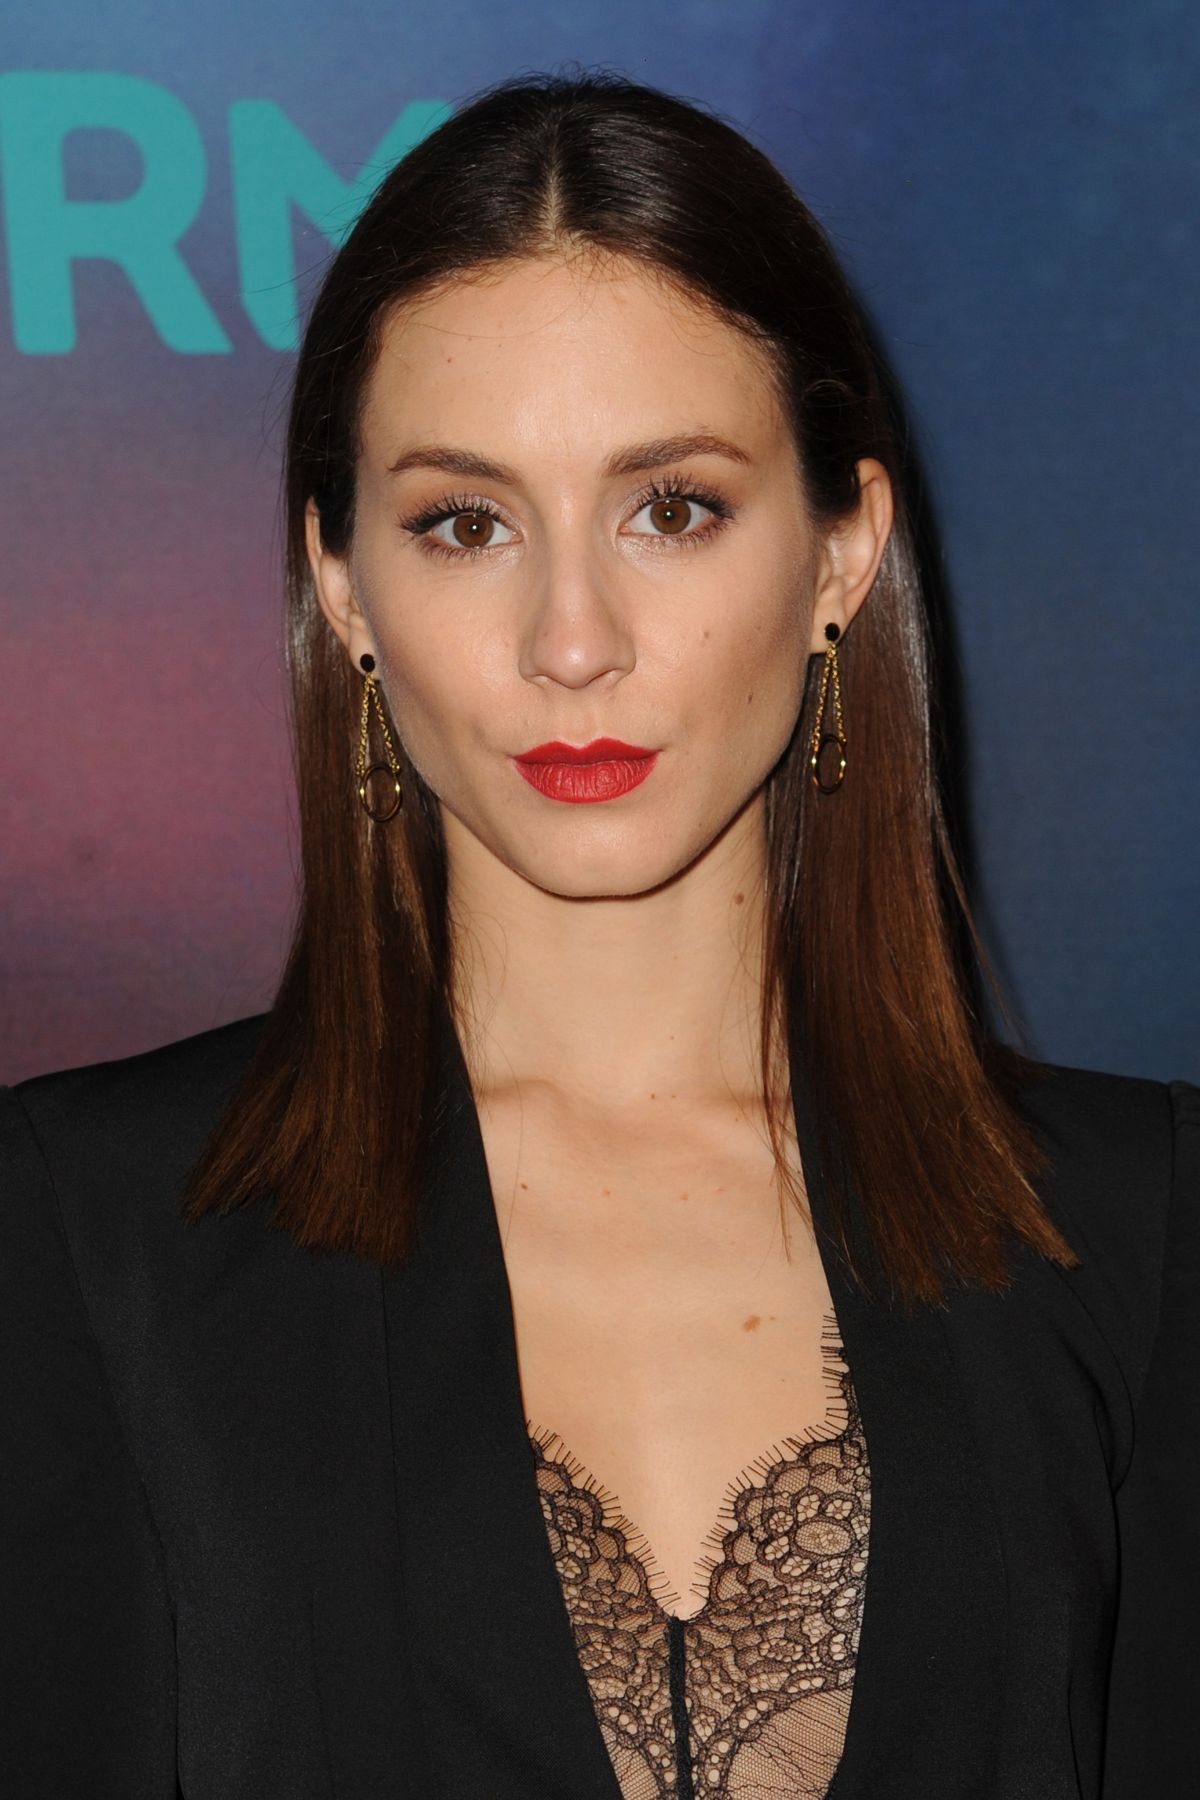 Troian Bellisario At 2017 Freeform Upfront in NYC   troian-bellisario-at-2017-freeform-upfront-in-nyc_4